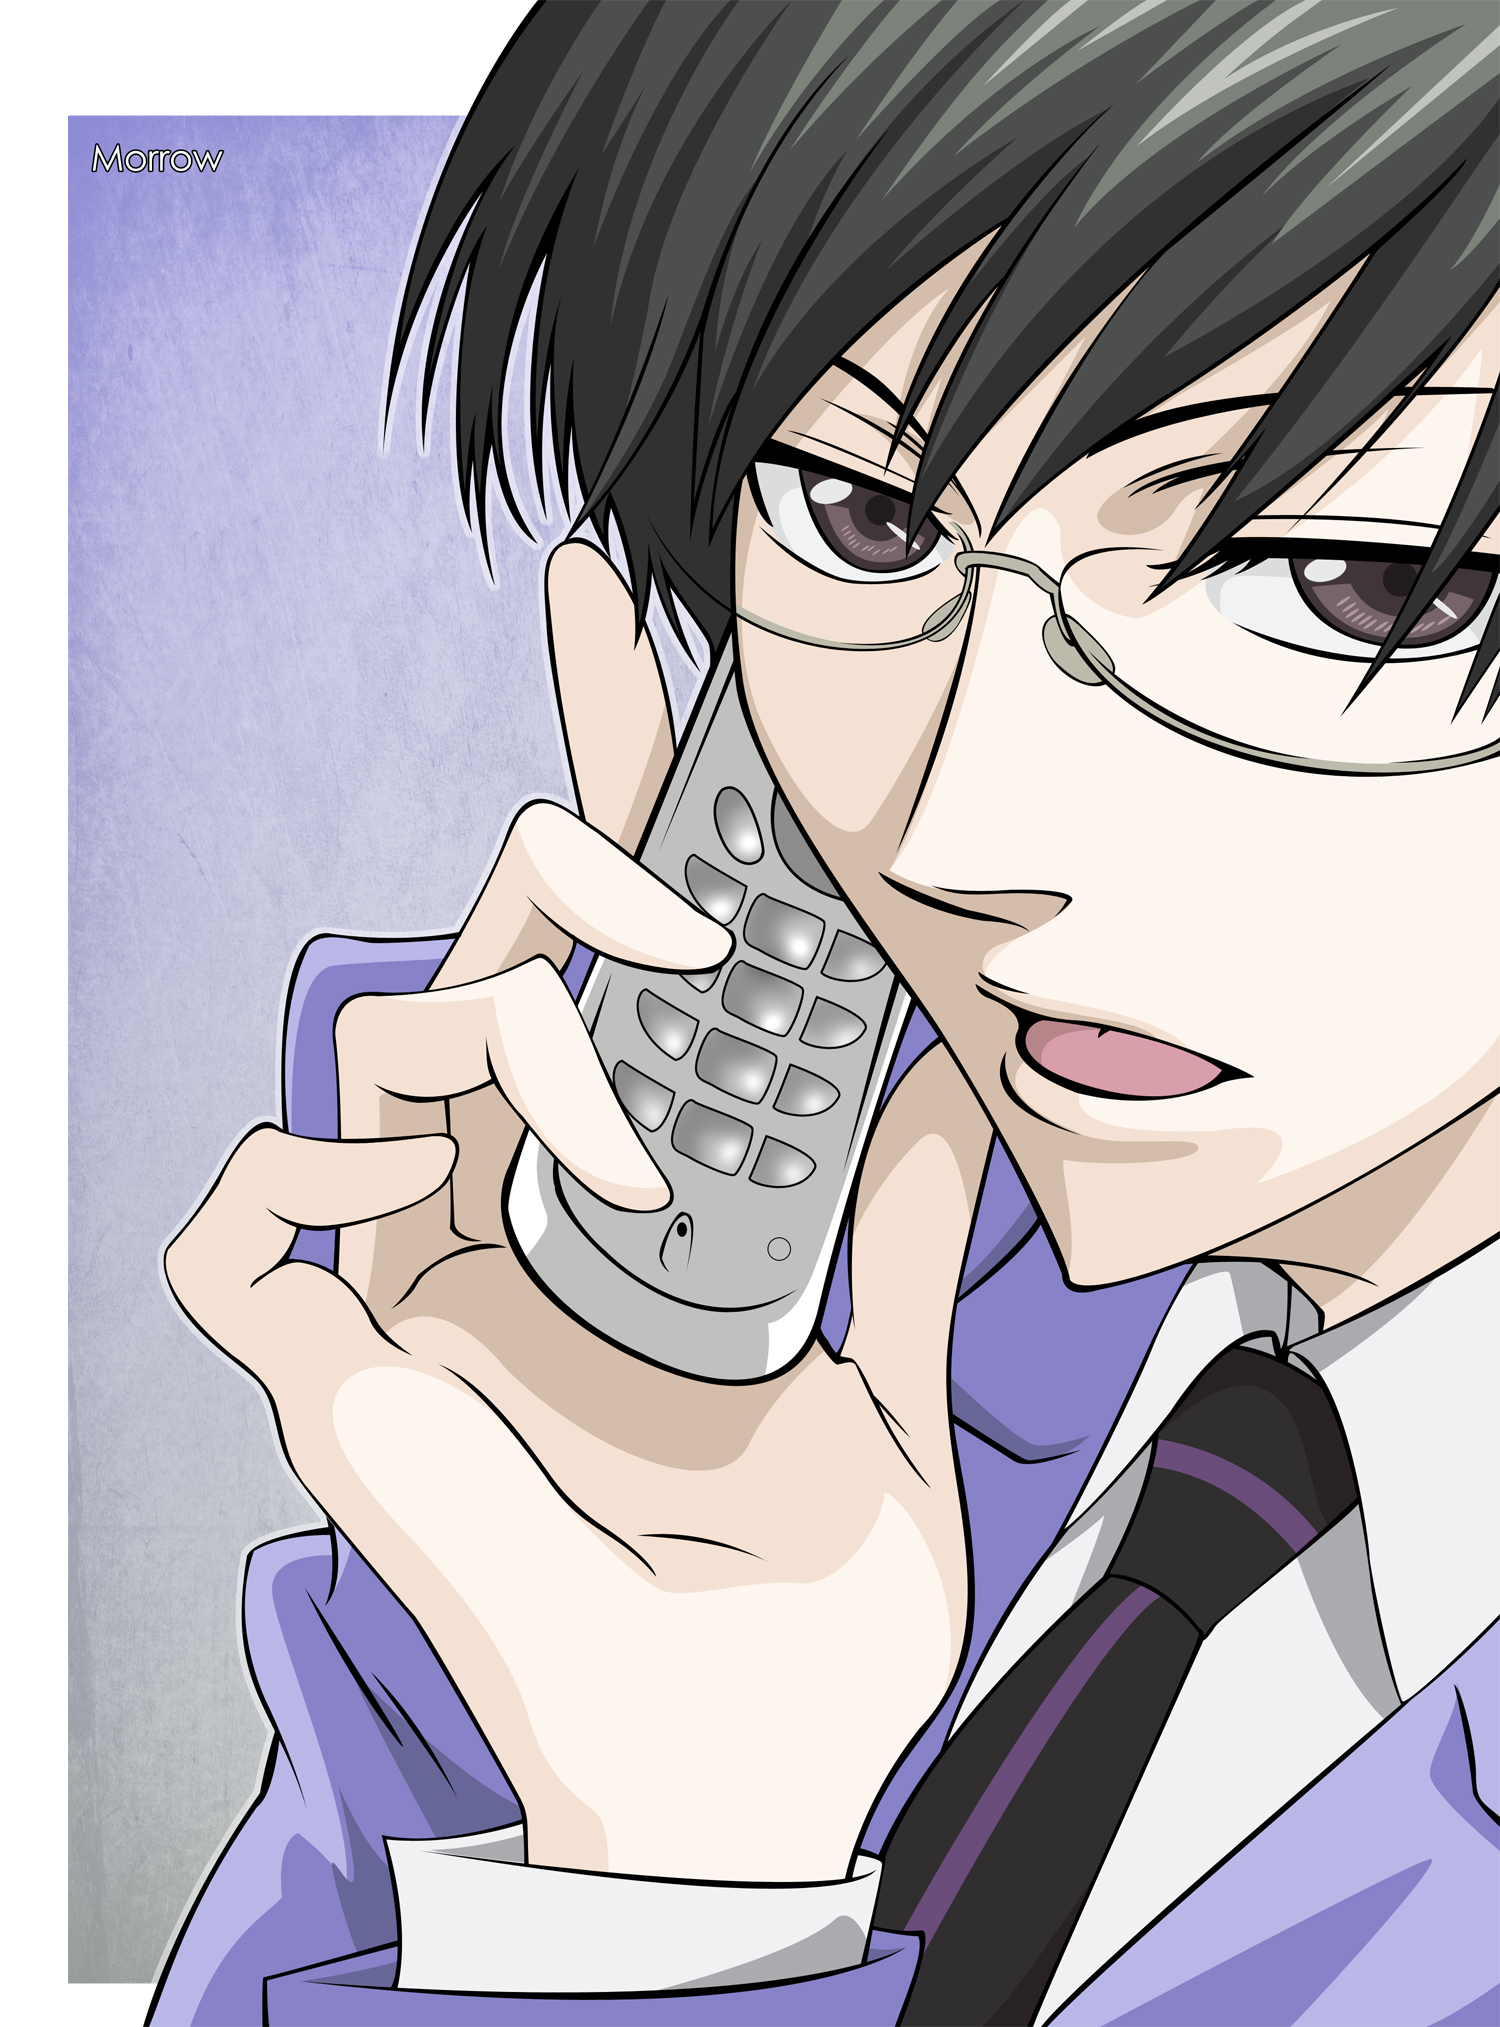 Ootori Kyoya - Ouran High School Host Club - Image #612325 ...